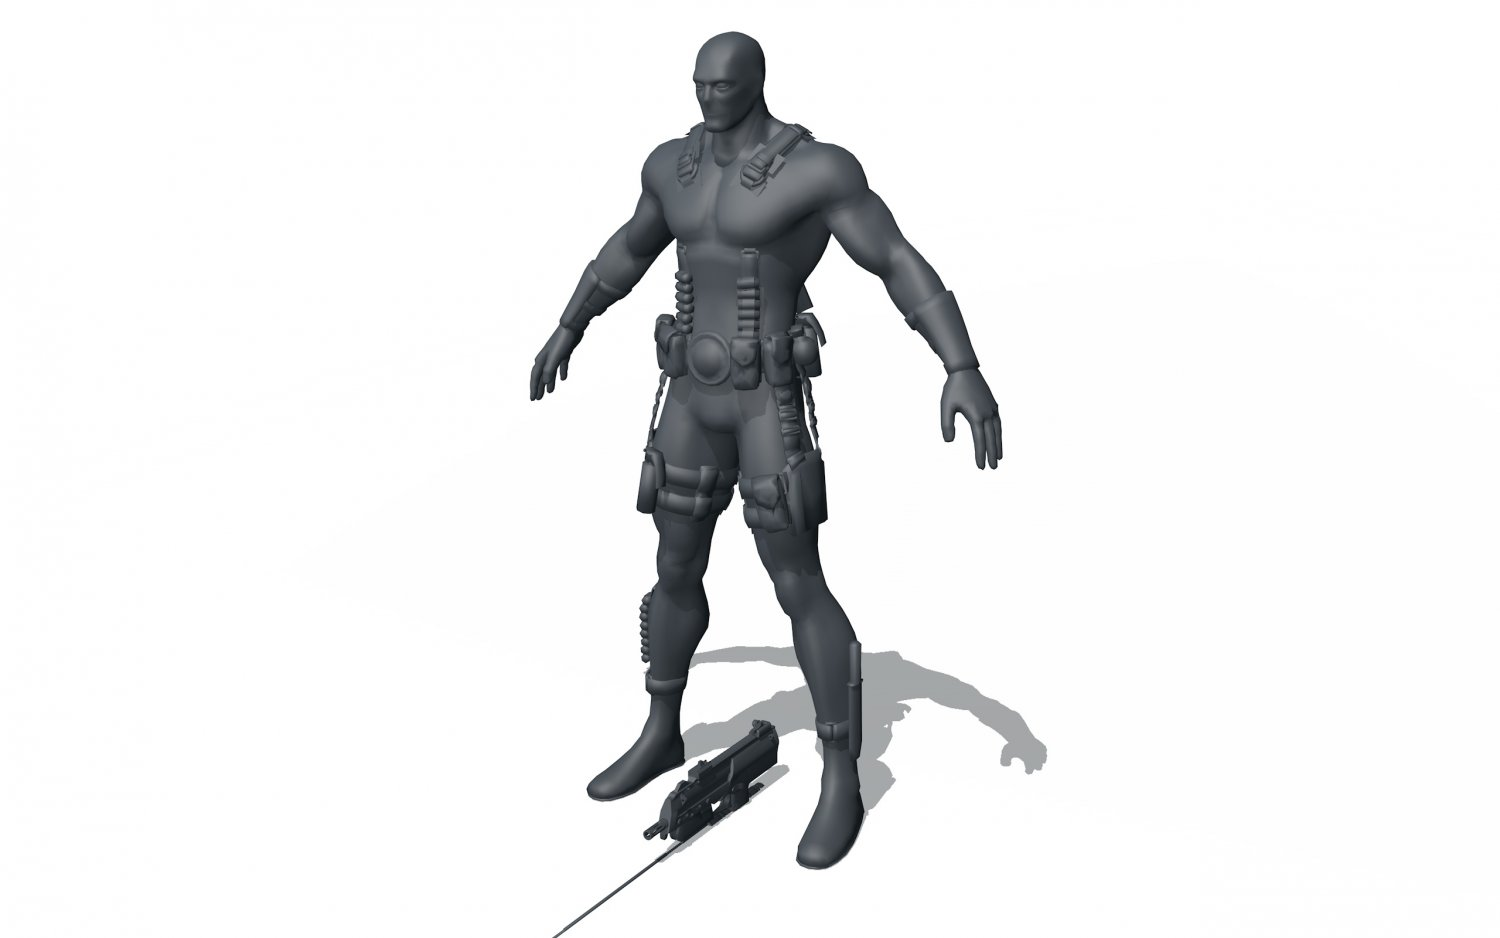 Deadpool Free 3d Model In Anatomy 3dexport